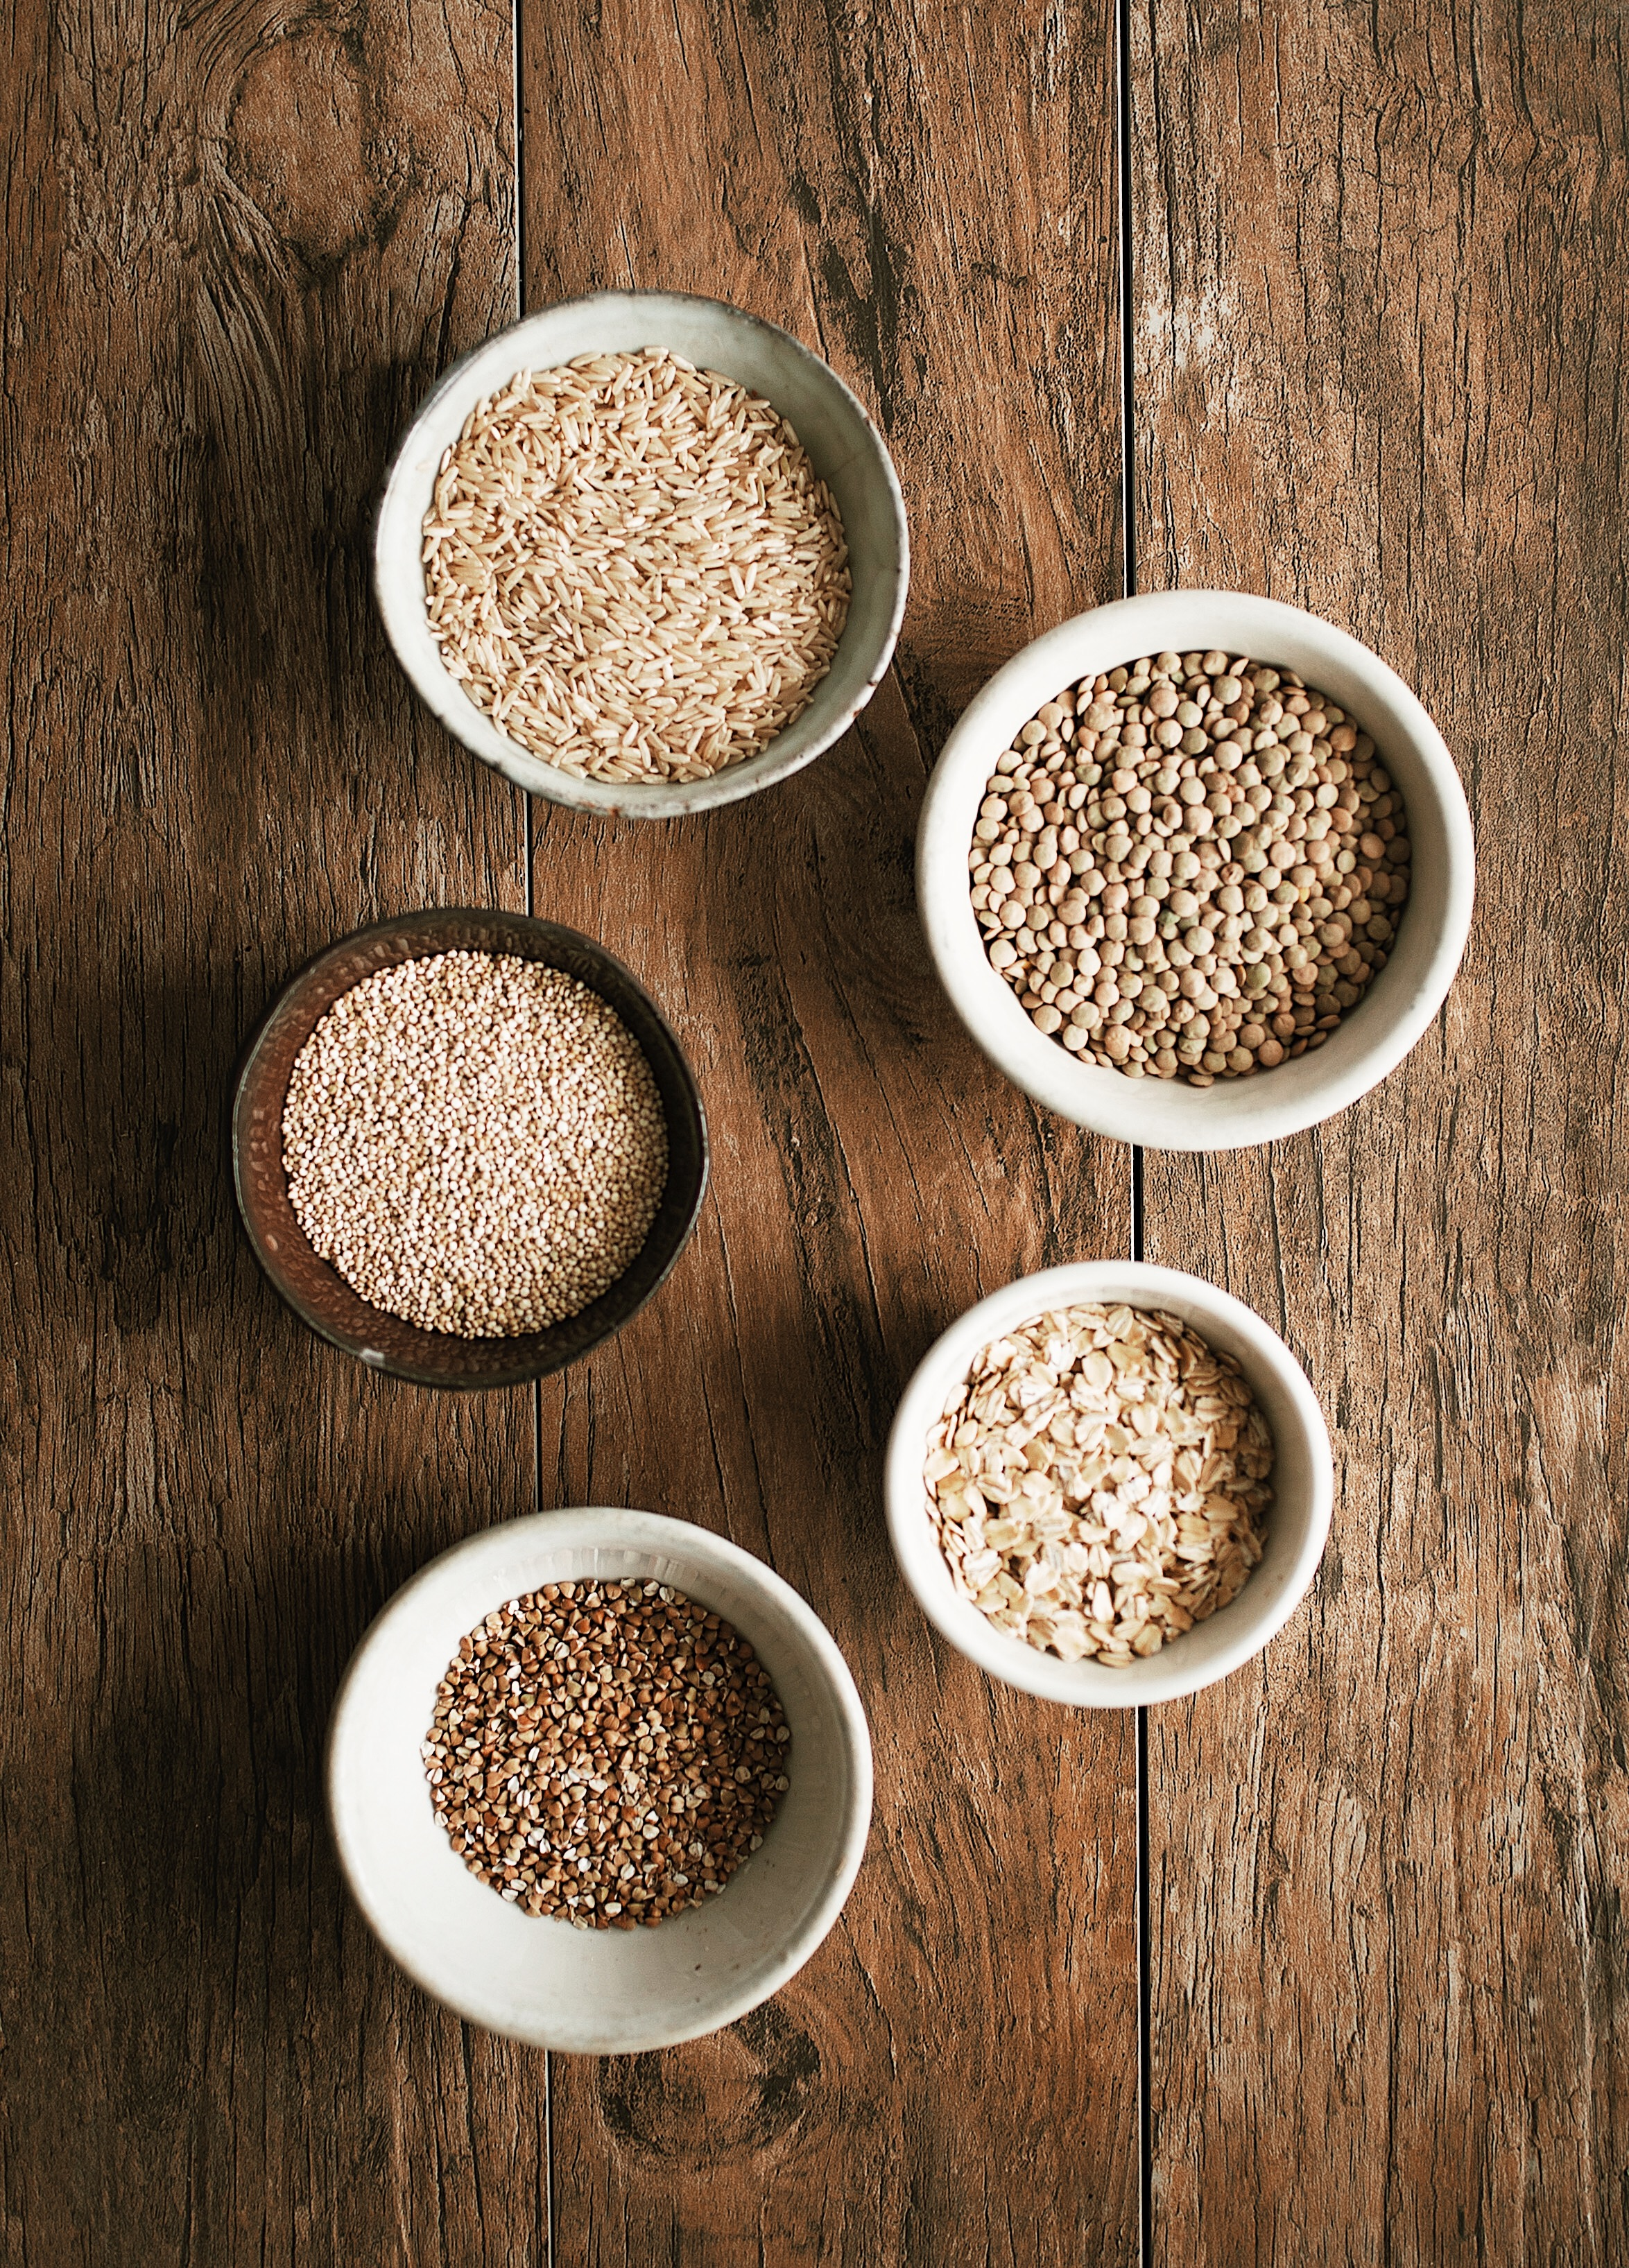 Grains and Legumes